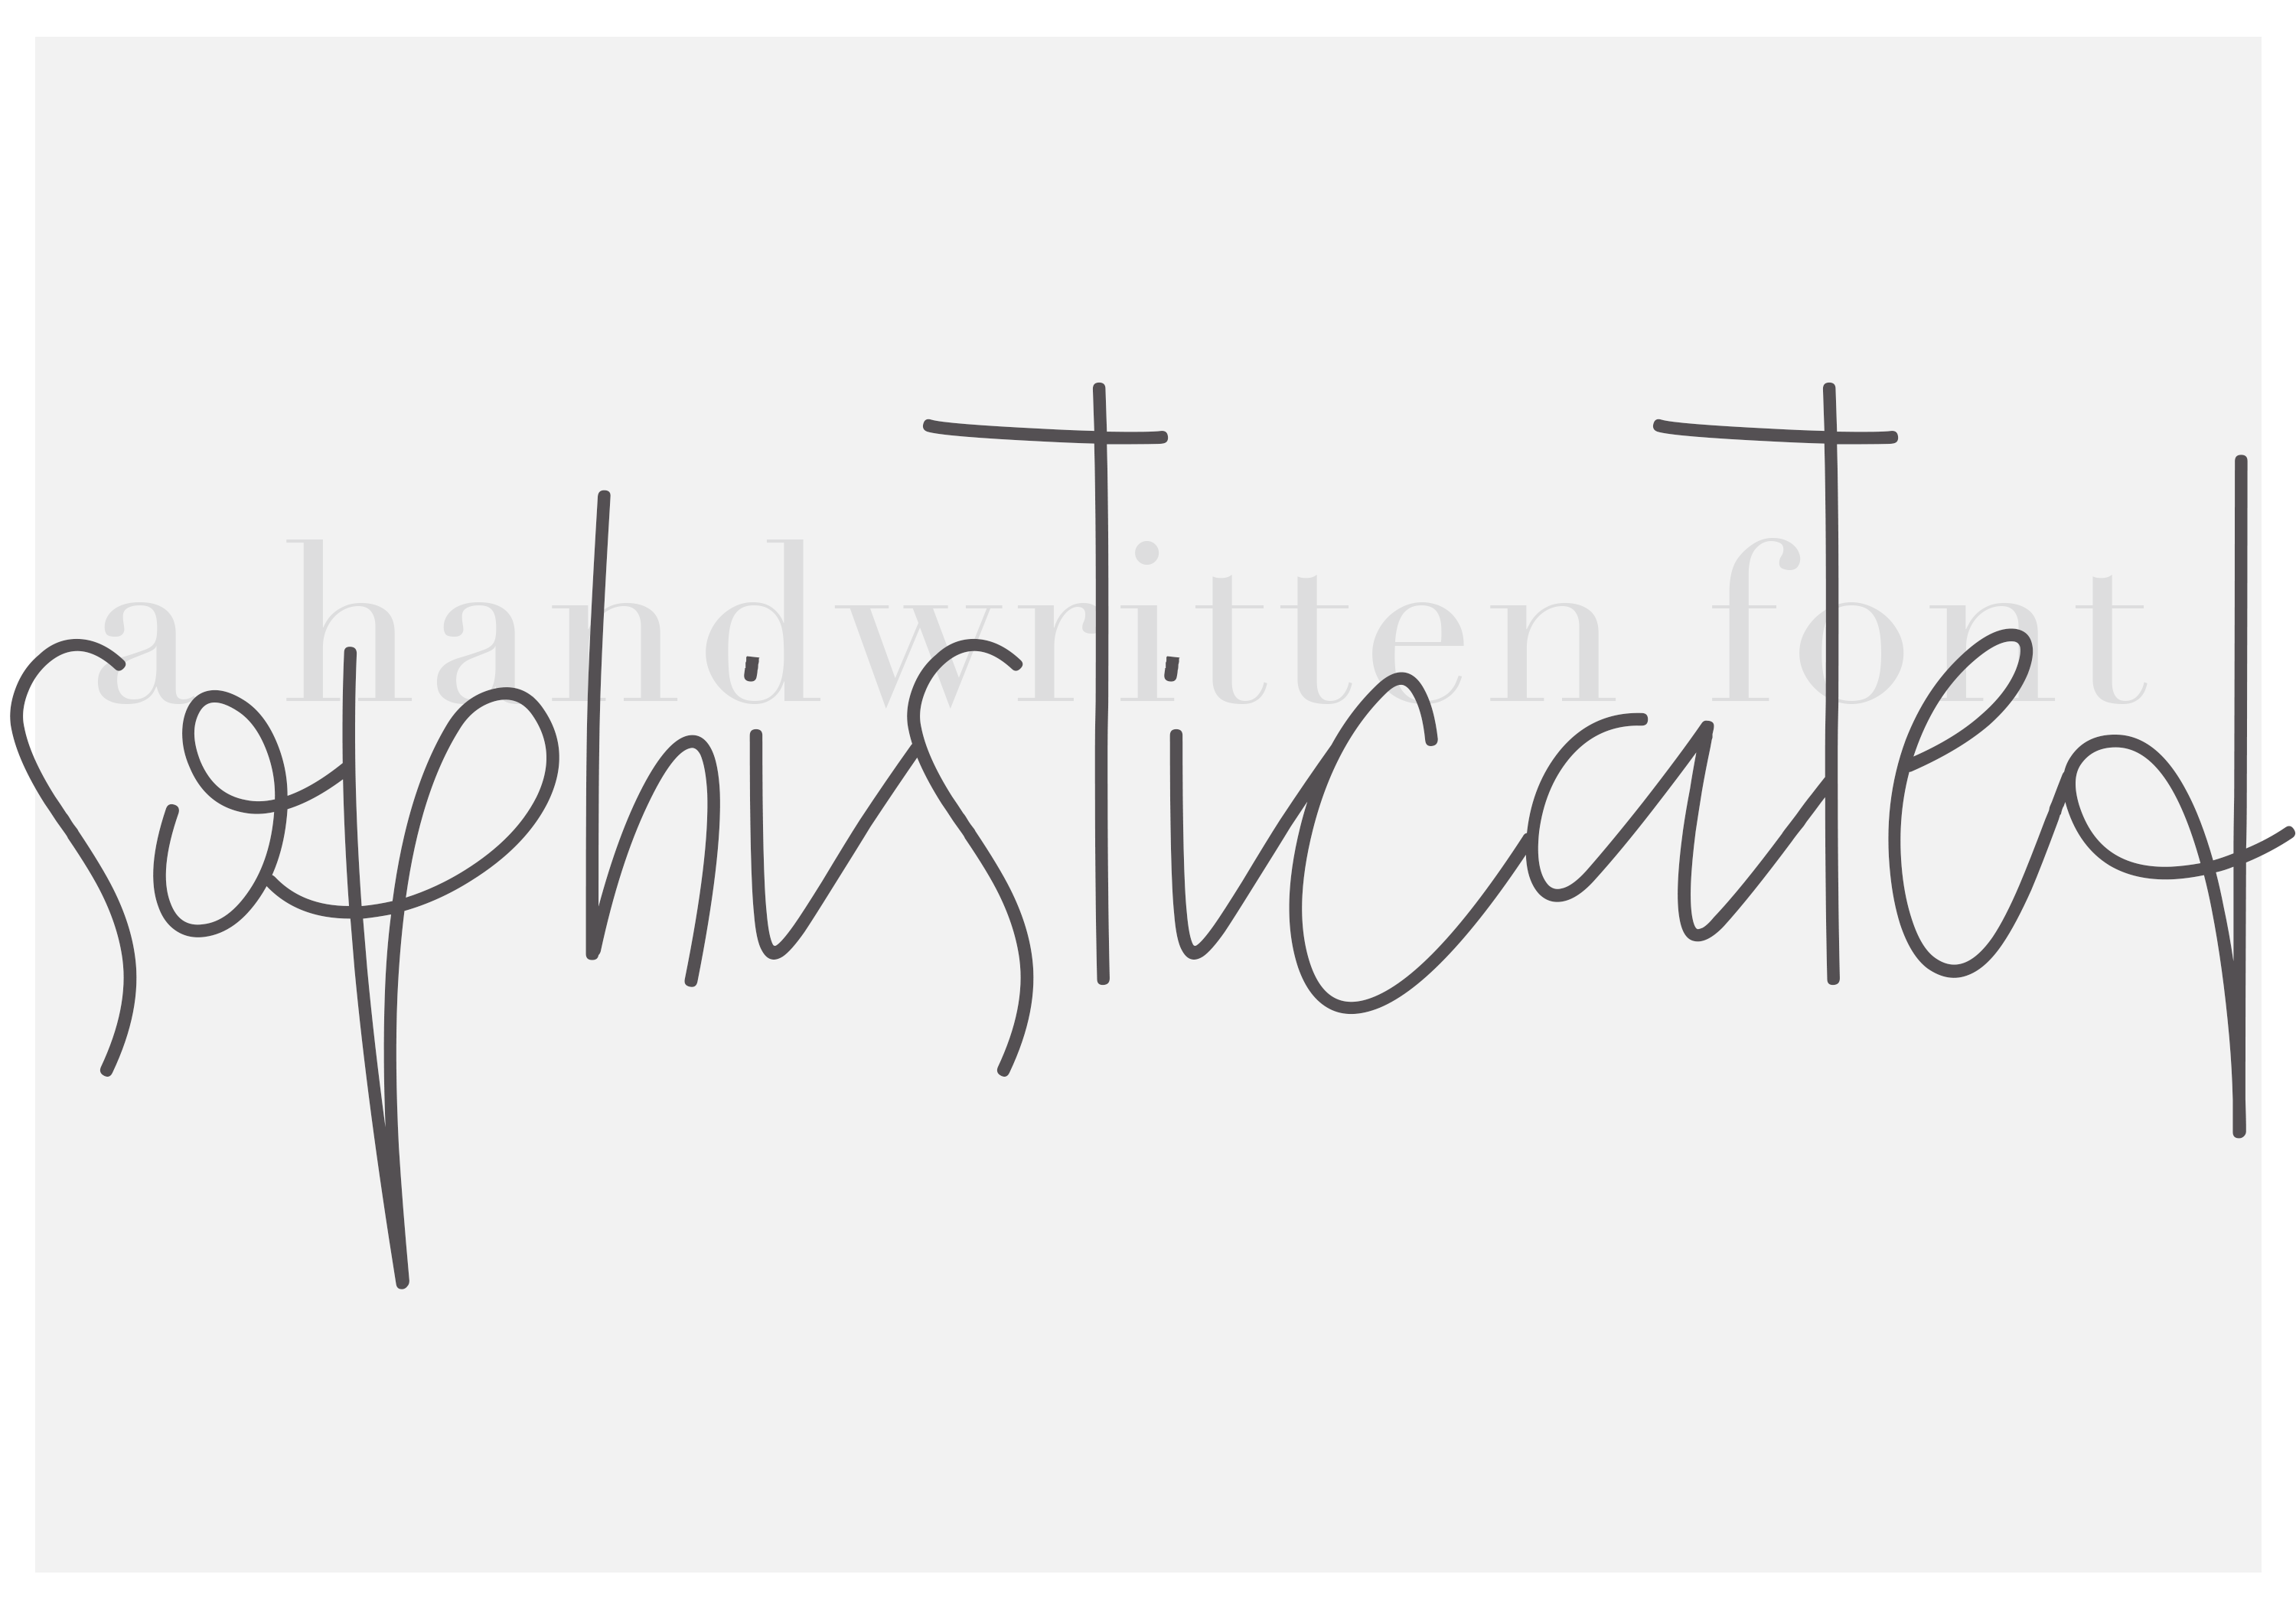 Sophisticated Outfit - A Chic Handwritten Font example image 6